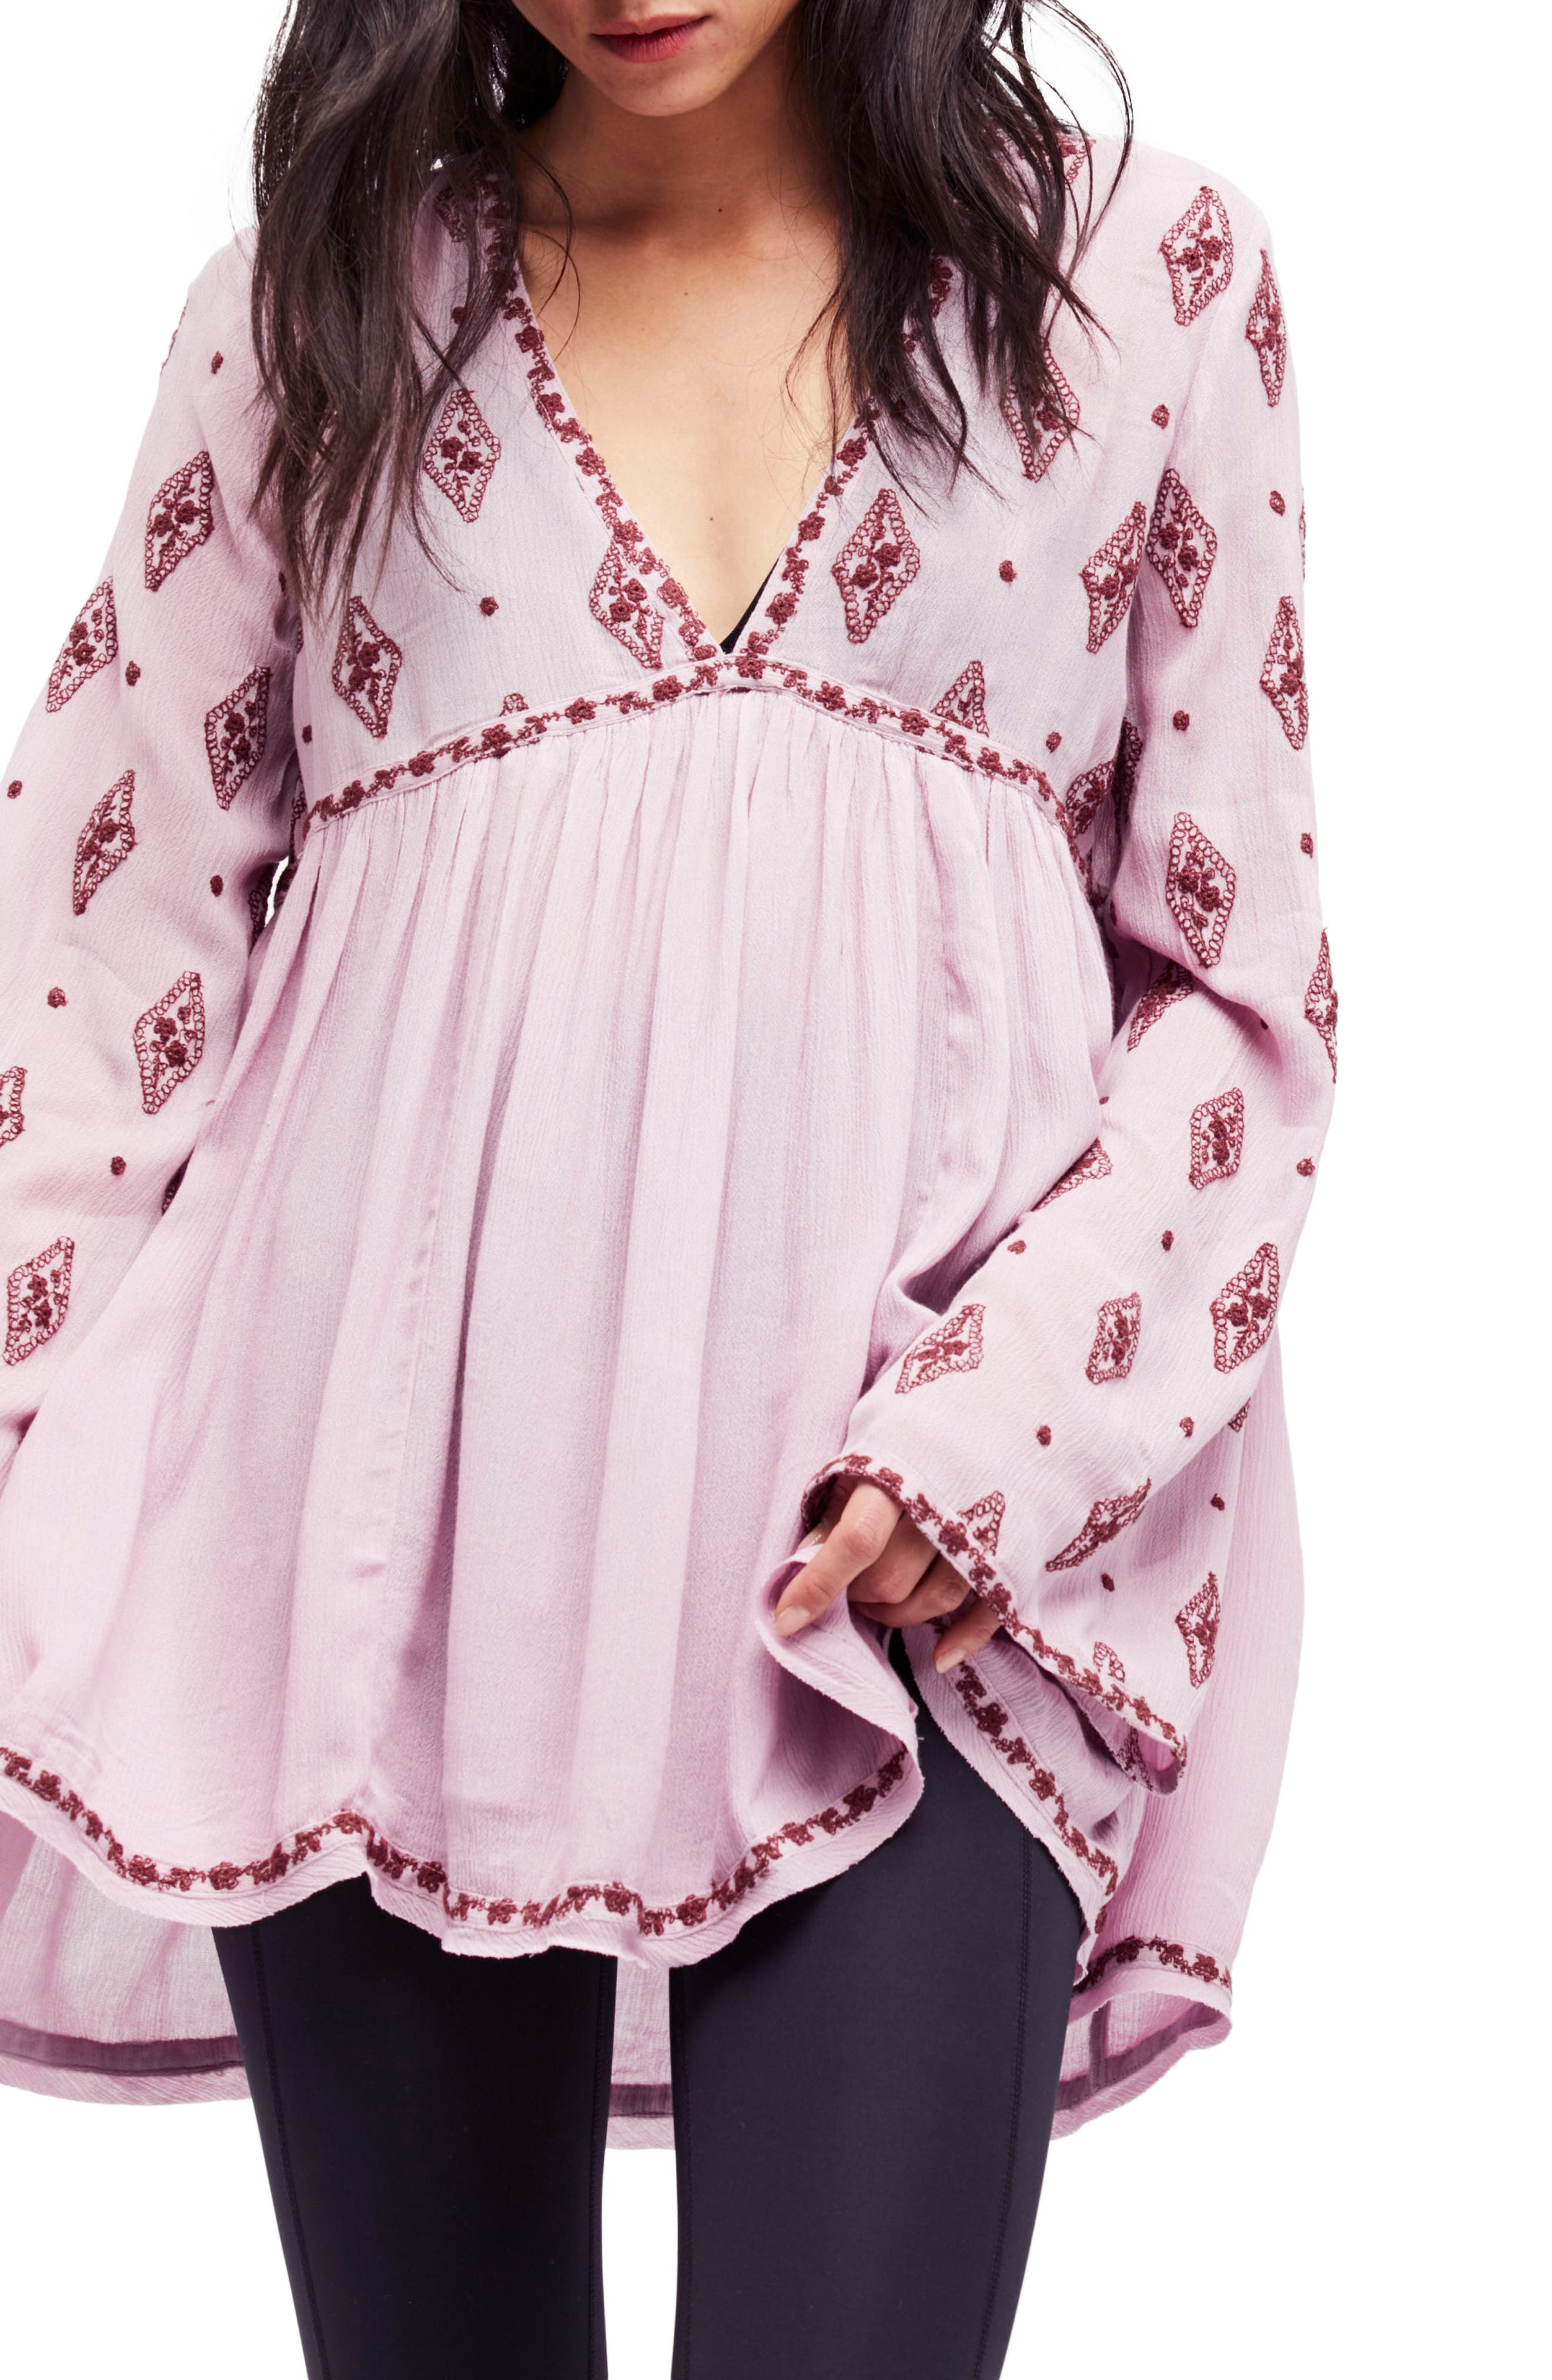 Main Image - Free People Embroidered Bell Sleeve Top